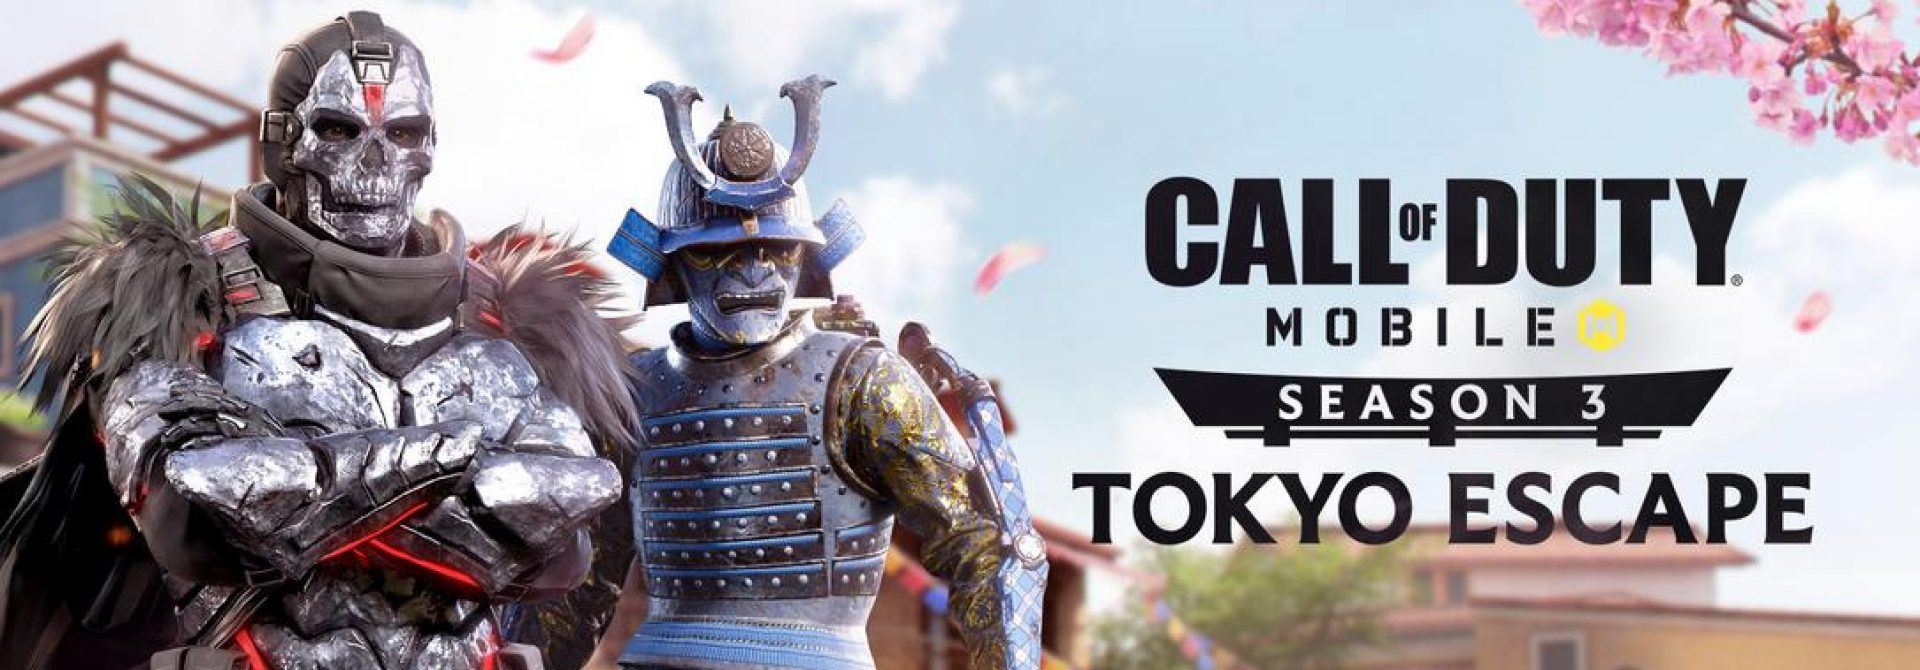 Call of Duty Mobile Season 3: Tokyo Escape Begins April 17